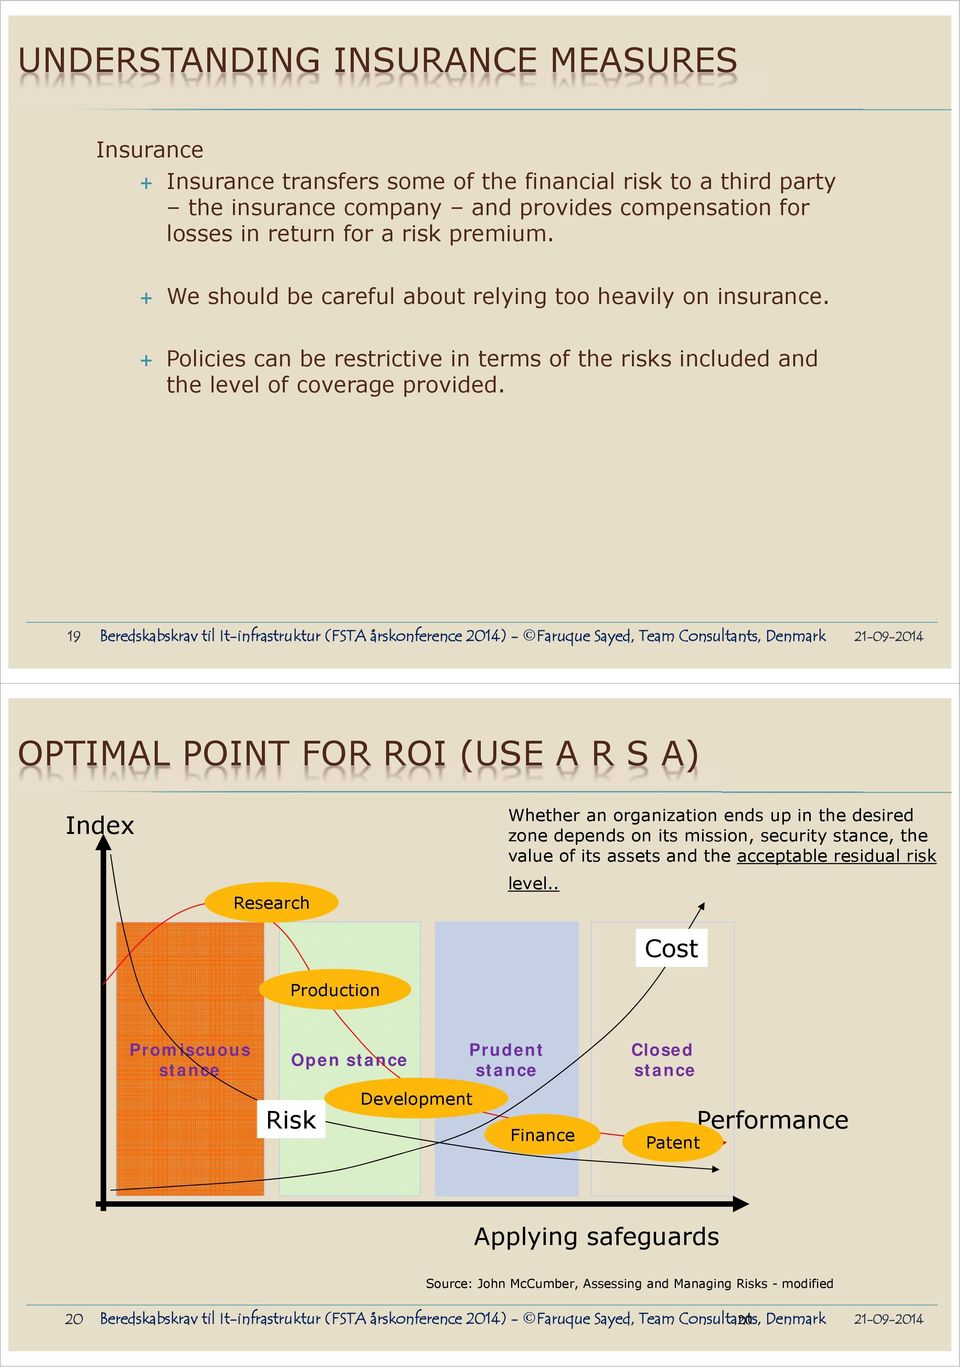 19 OPTIMAL POINT FOR ROI (USE A R S A) Index Research Production Whether an organization ends up in the desired zone depends on its mission, security stance, the value of its assets and the